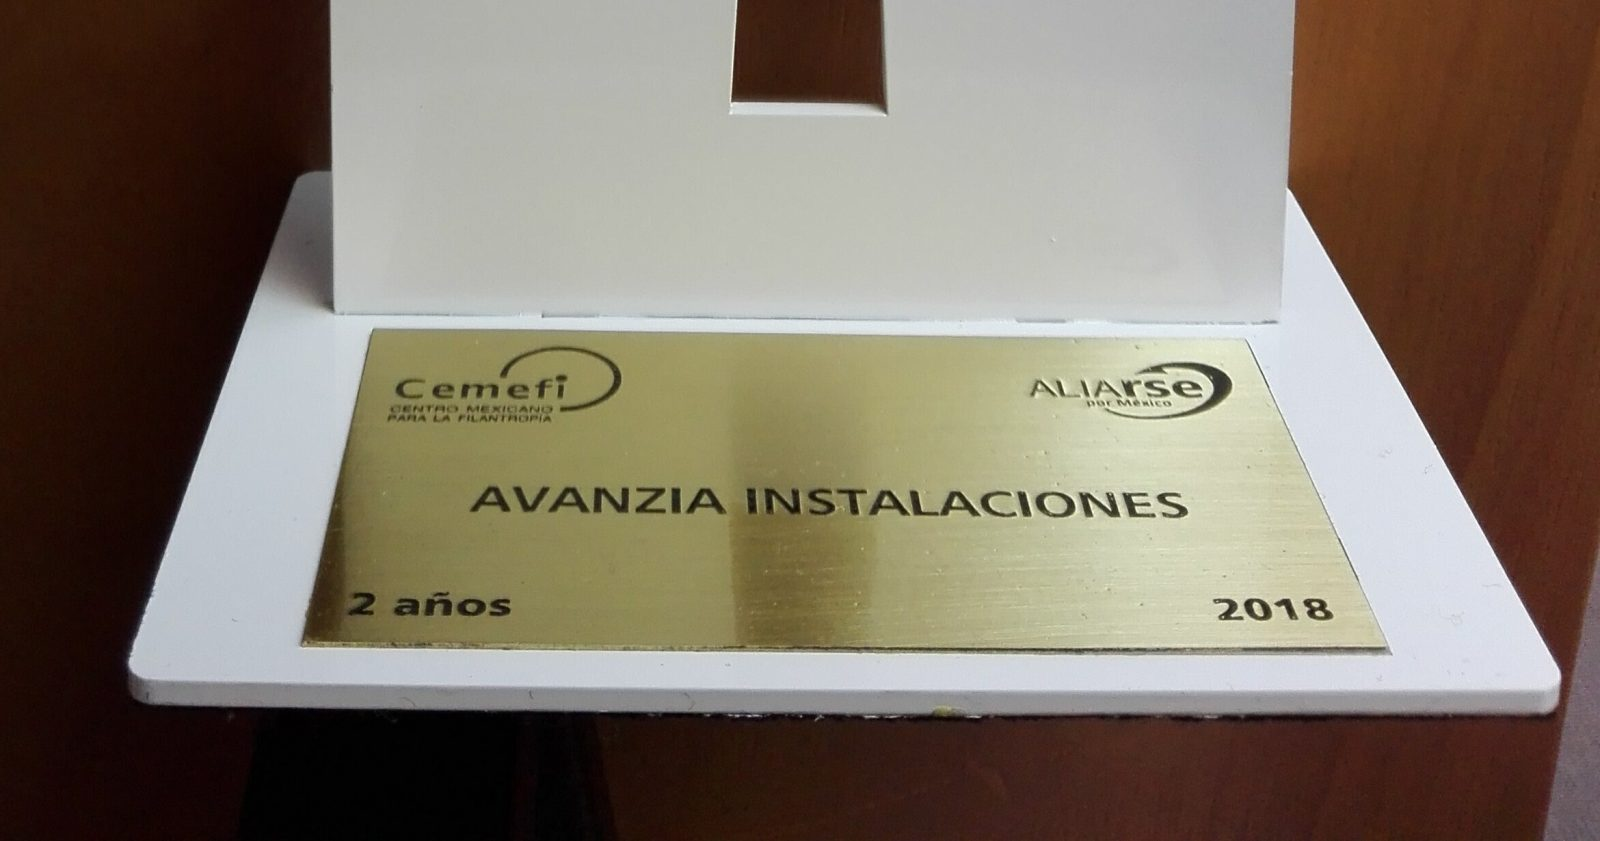 Avanzia Instalaciones and IHSA obtain the recognition of a